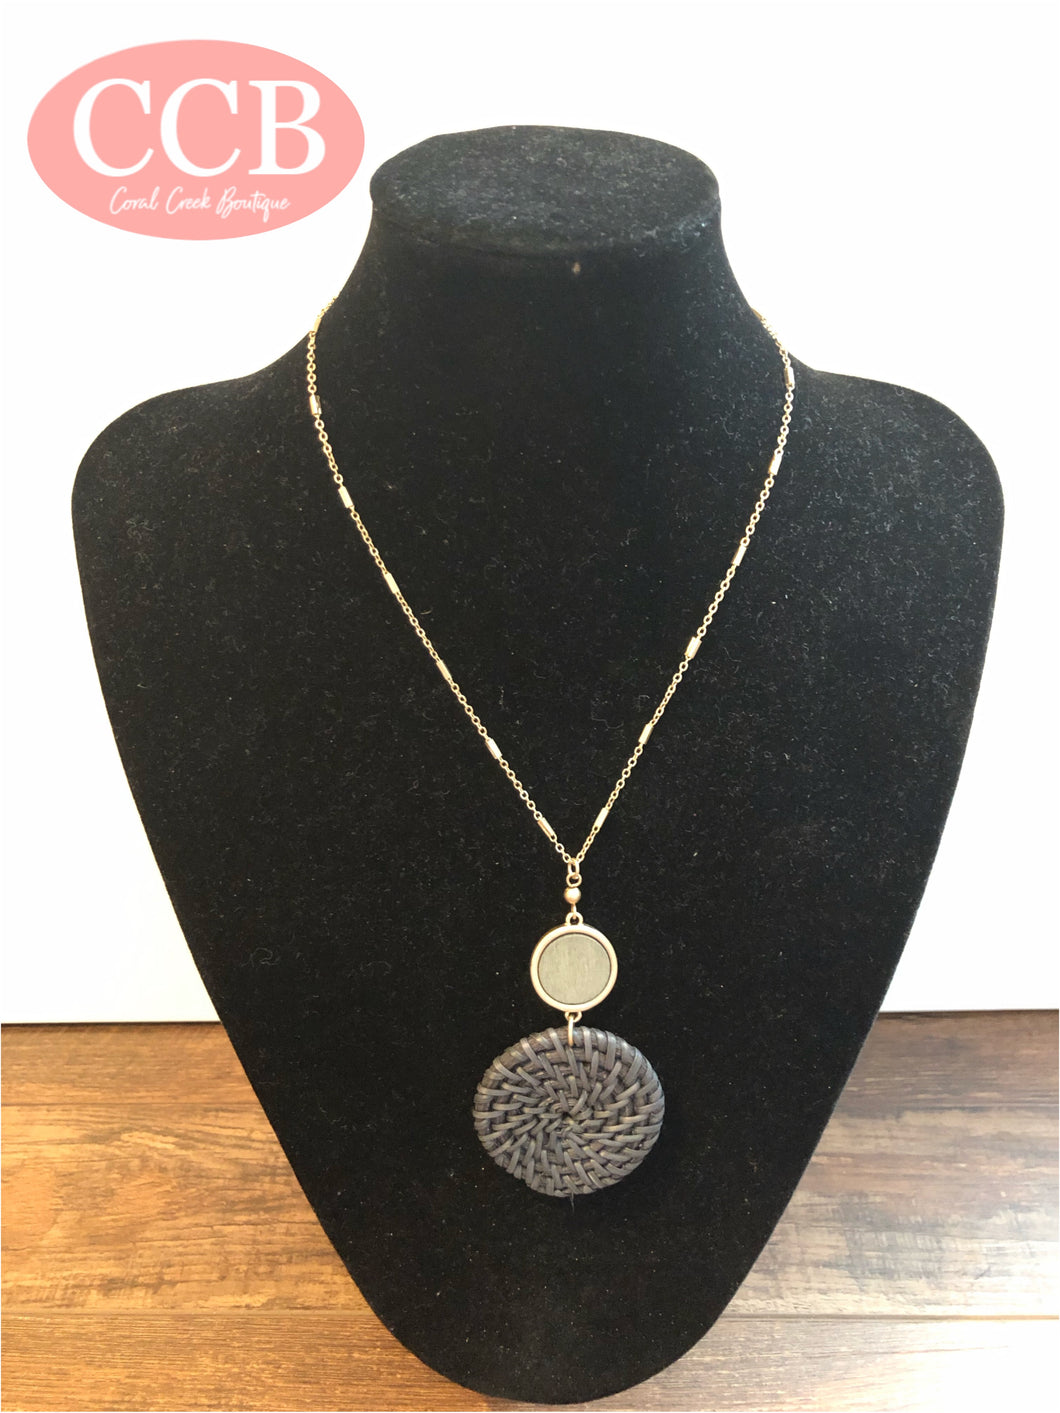 Necklace w/ Earrings – Round Gray